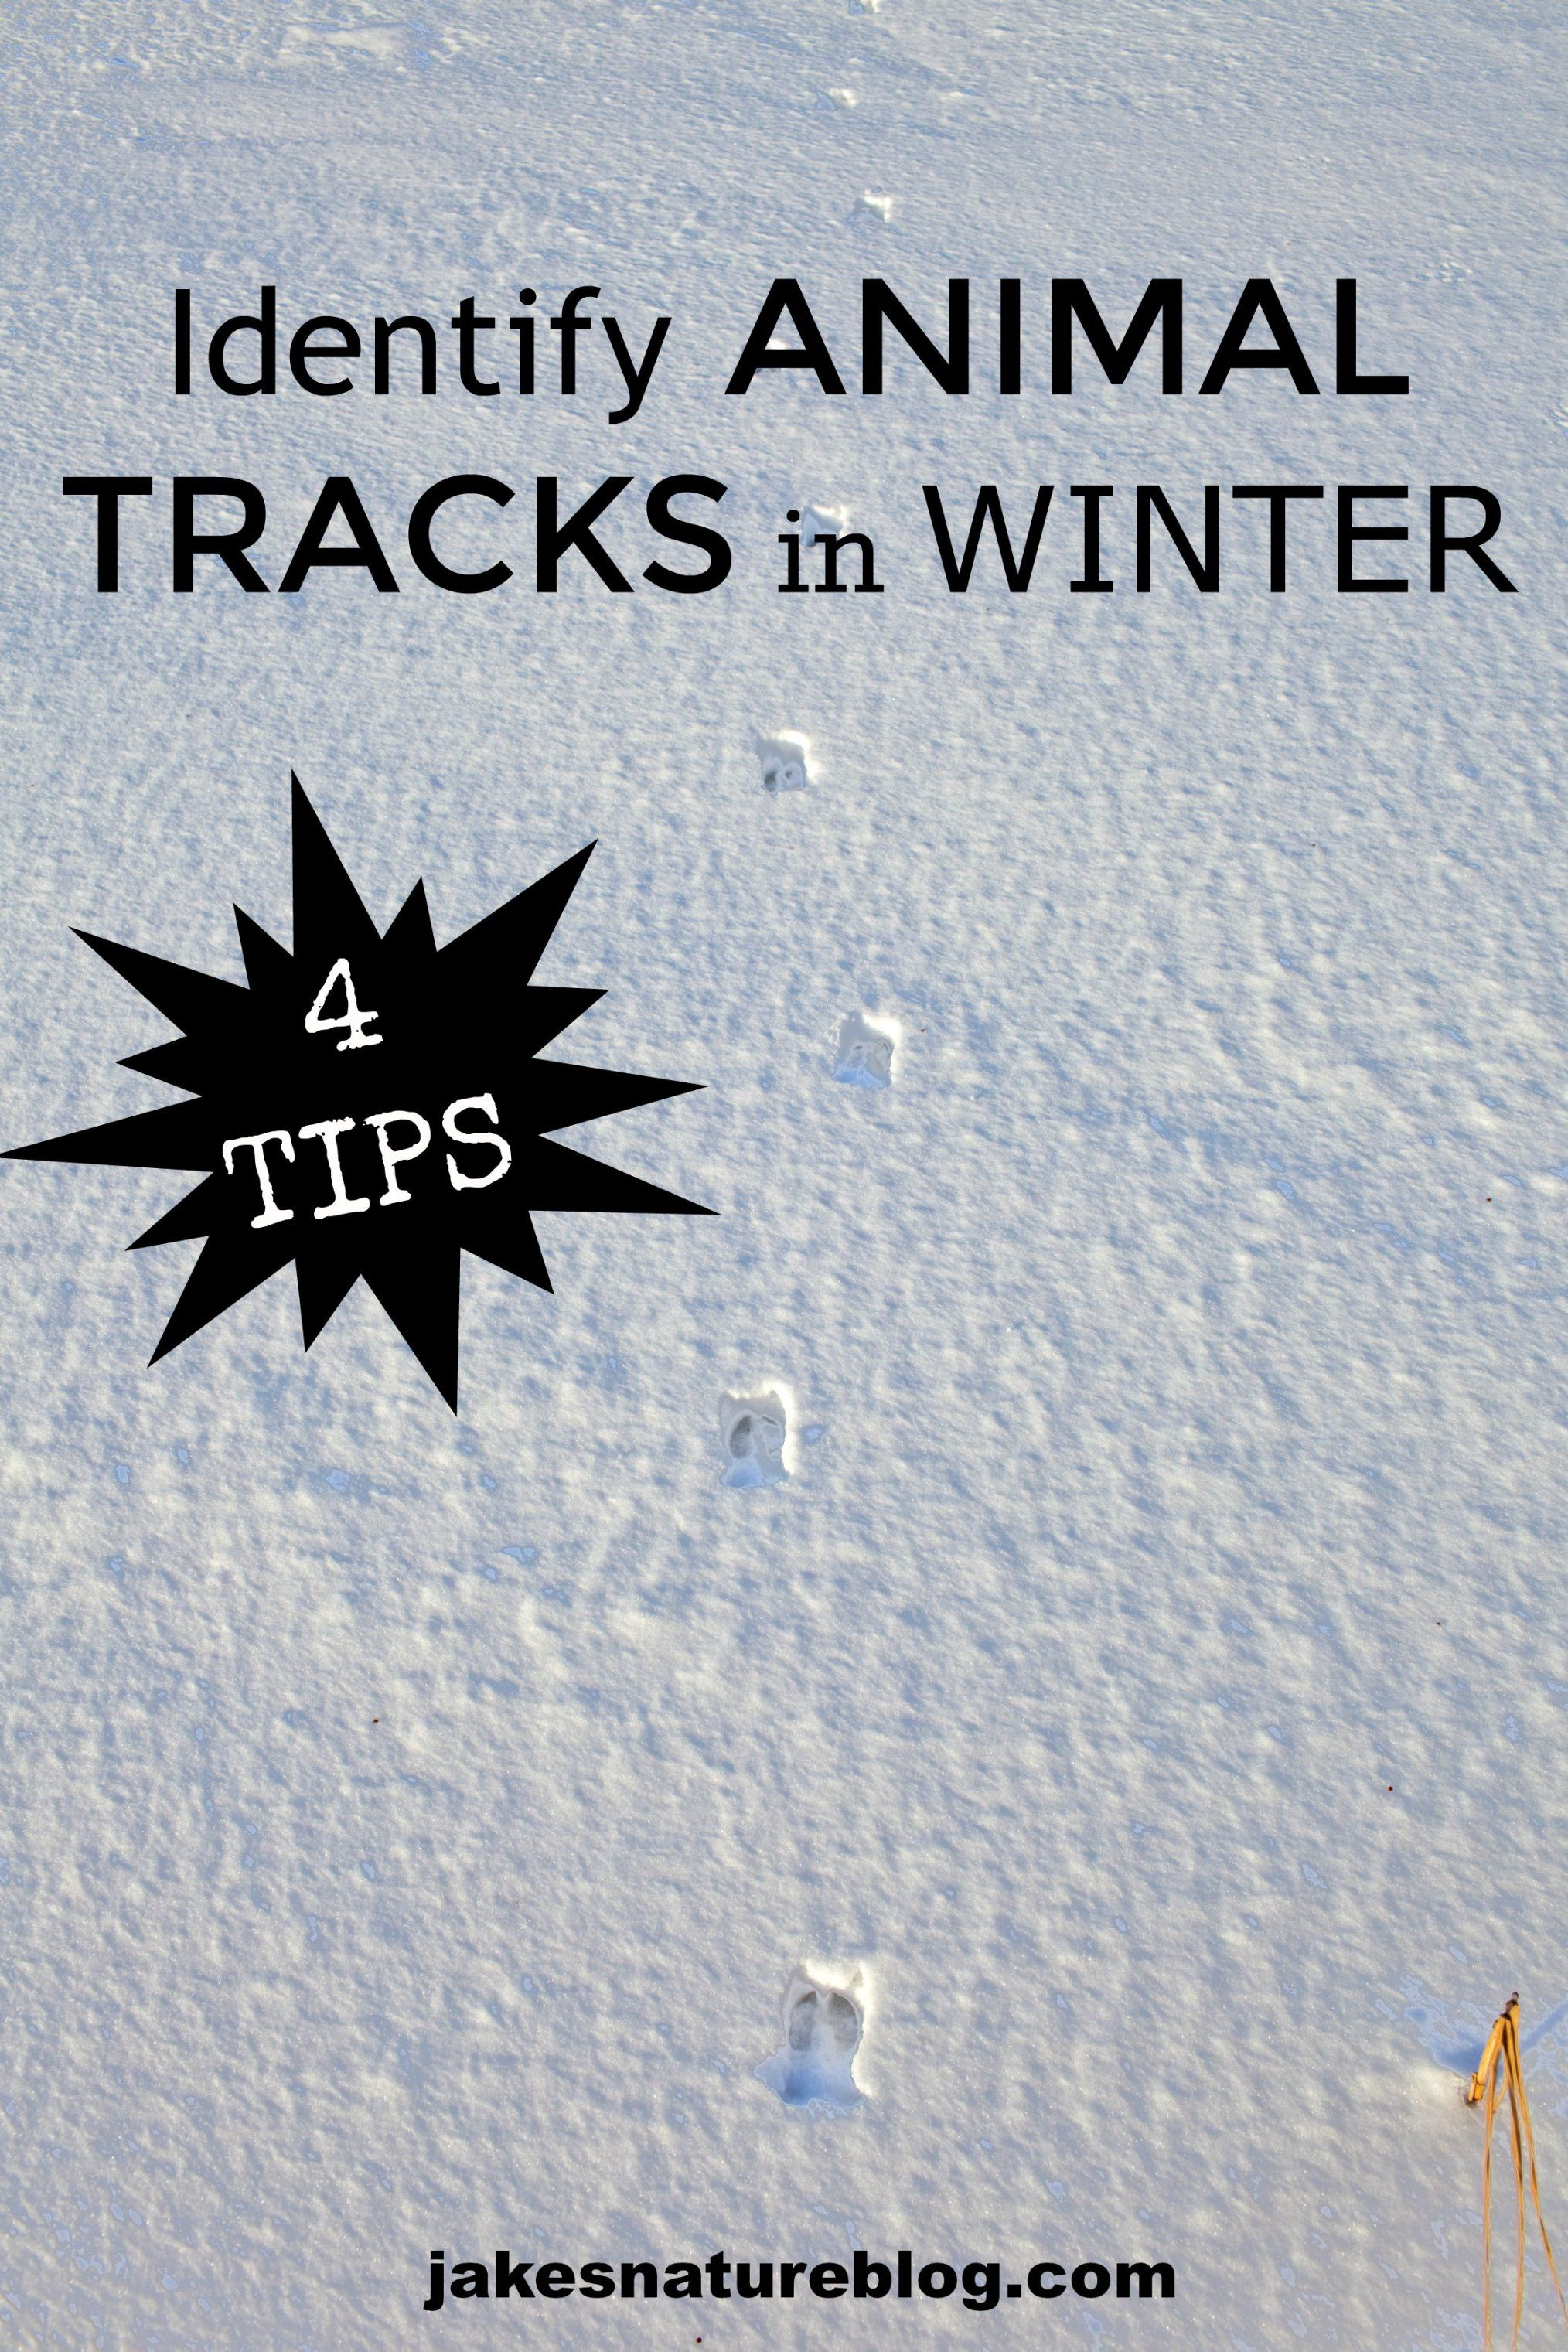 4 Tips To Help Identify Animal Tracks In Winter